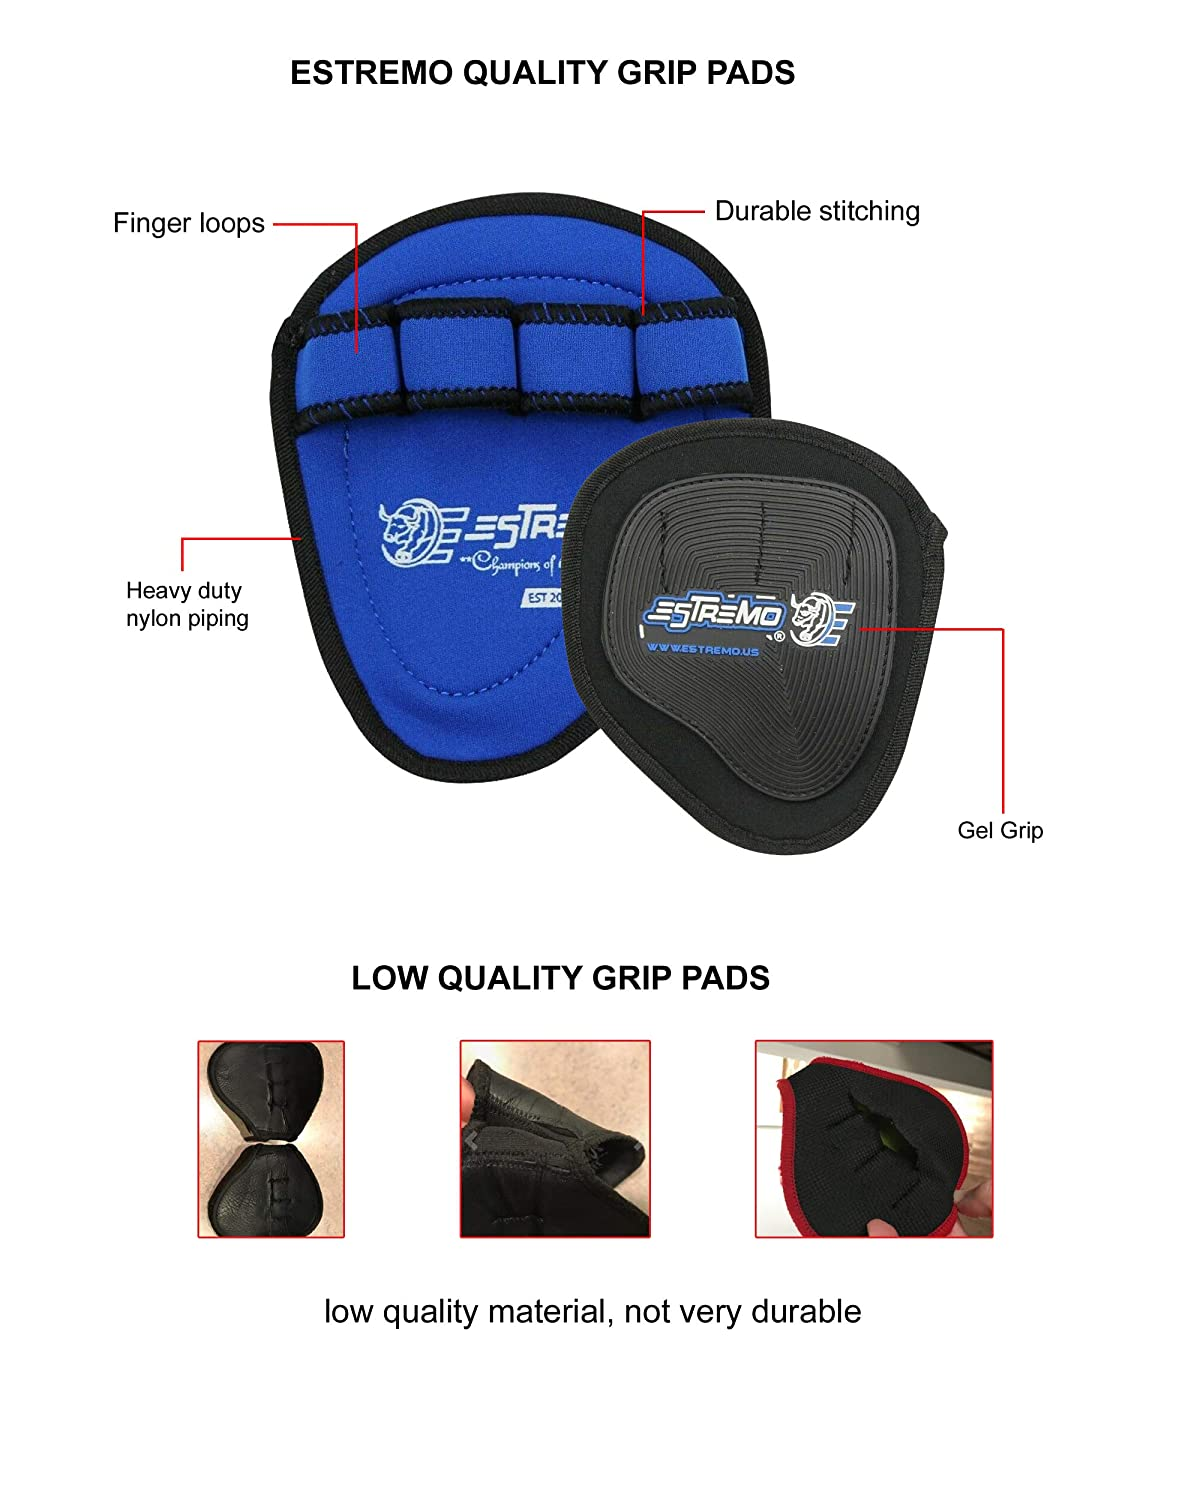 Non-Slip and Sweat Free Workout Grips for Weightlifting Ideal Full Palm Protection Grips ESTREMO Weightlifting Grip Pads